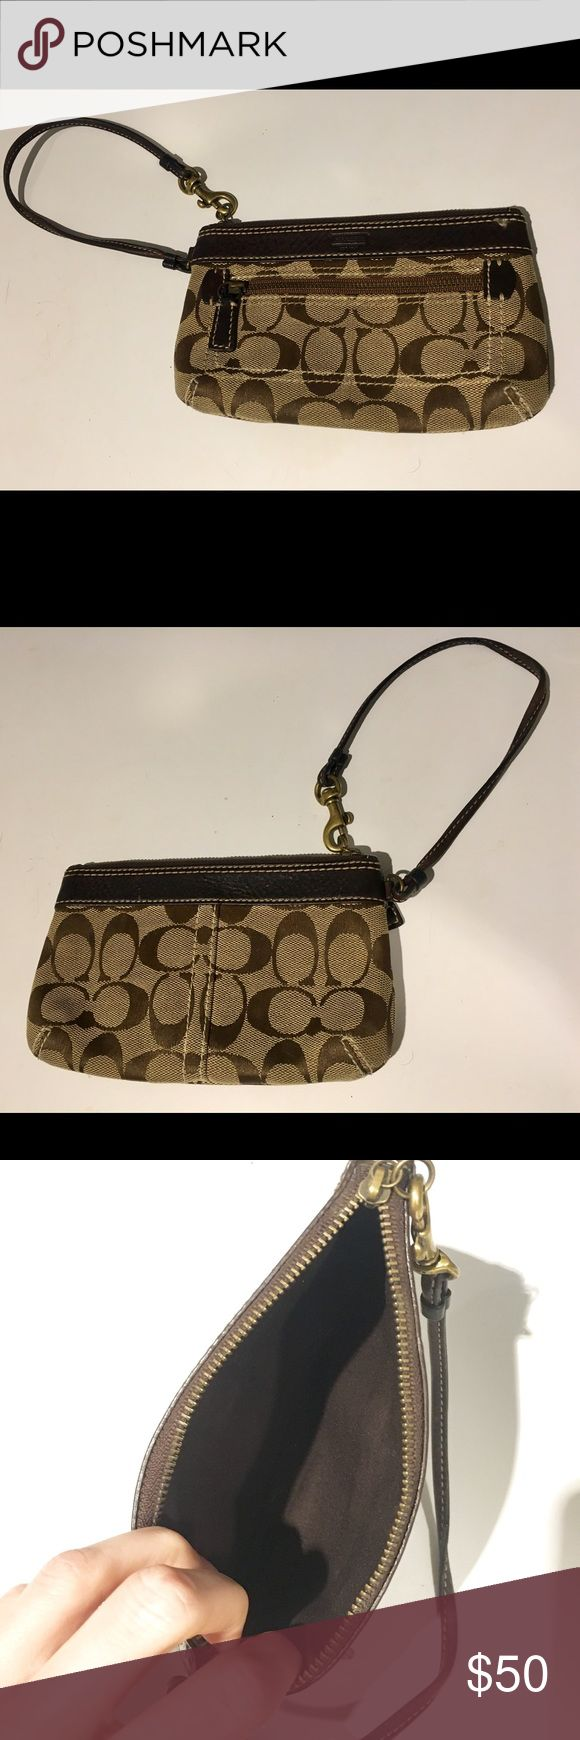 """Coach Wristlet Classic """"C"""" Coach Wristlet. Brown leather with brown and tan fabric. Perfect for a casual and everyday look!  In excellent condition, used very little. Coach Bags Clutches & Wristlets"""